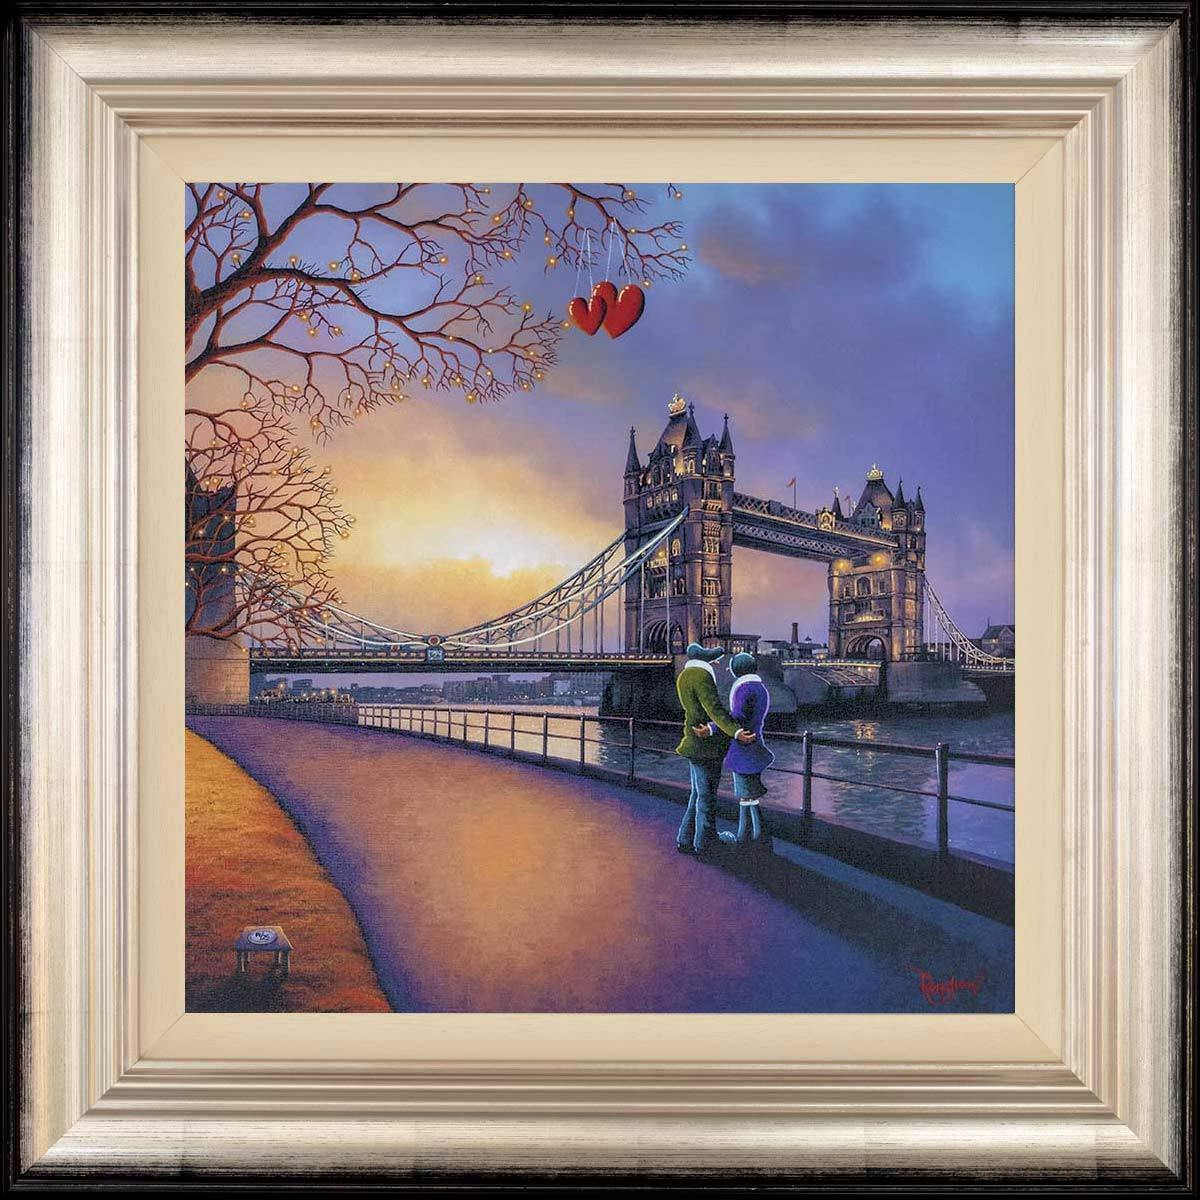 Heart of London - Edition - Rare David Renshaw